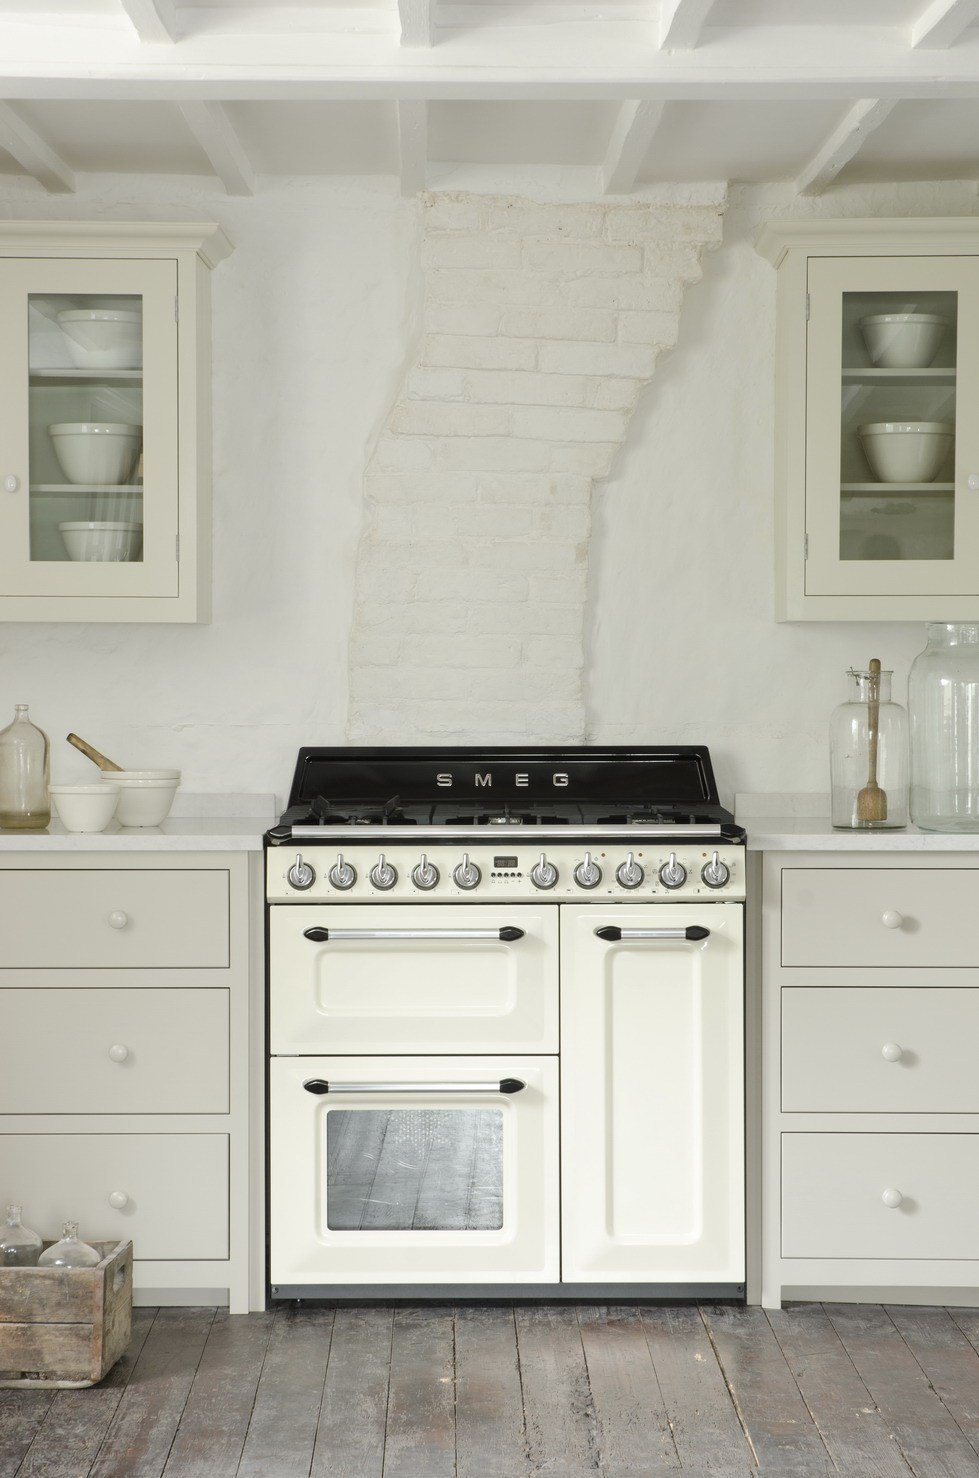 Awesome Cucina A Gas Smeg Images - harrop.us - harrop.us